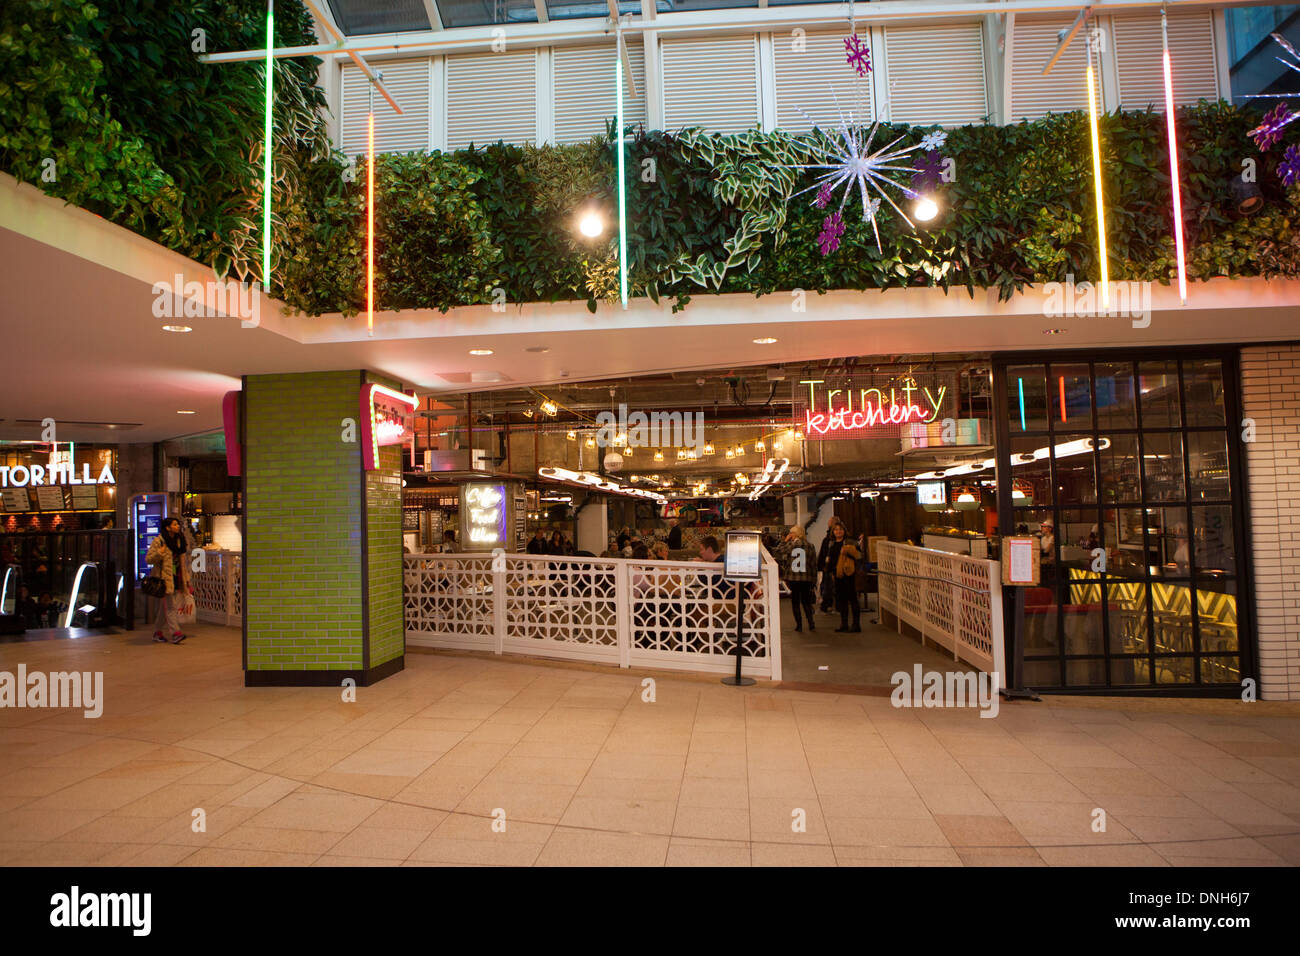 Trinity Kitchen at Trinity Leeds, a shopping and leisure centre in Leeds, England, - Stock Image